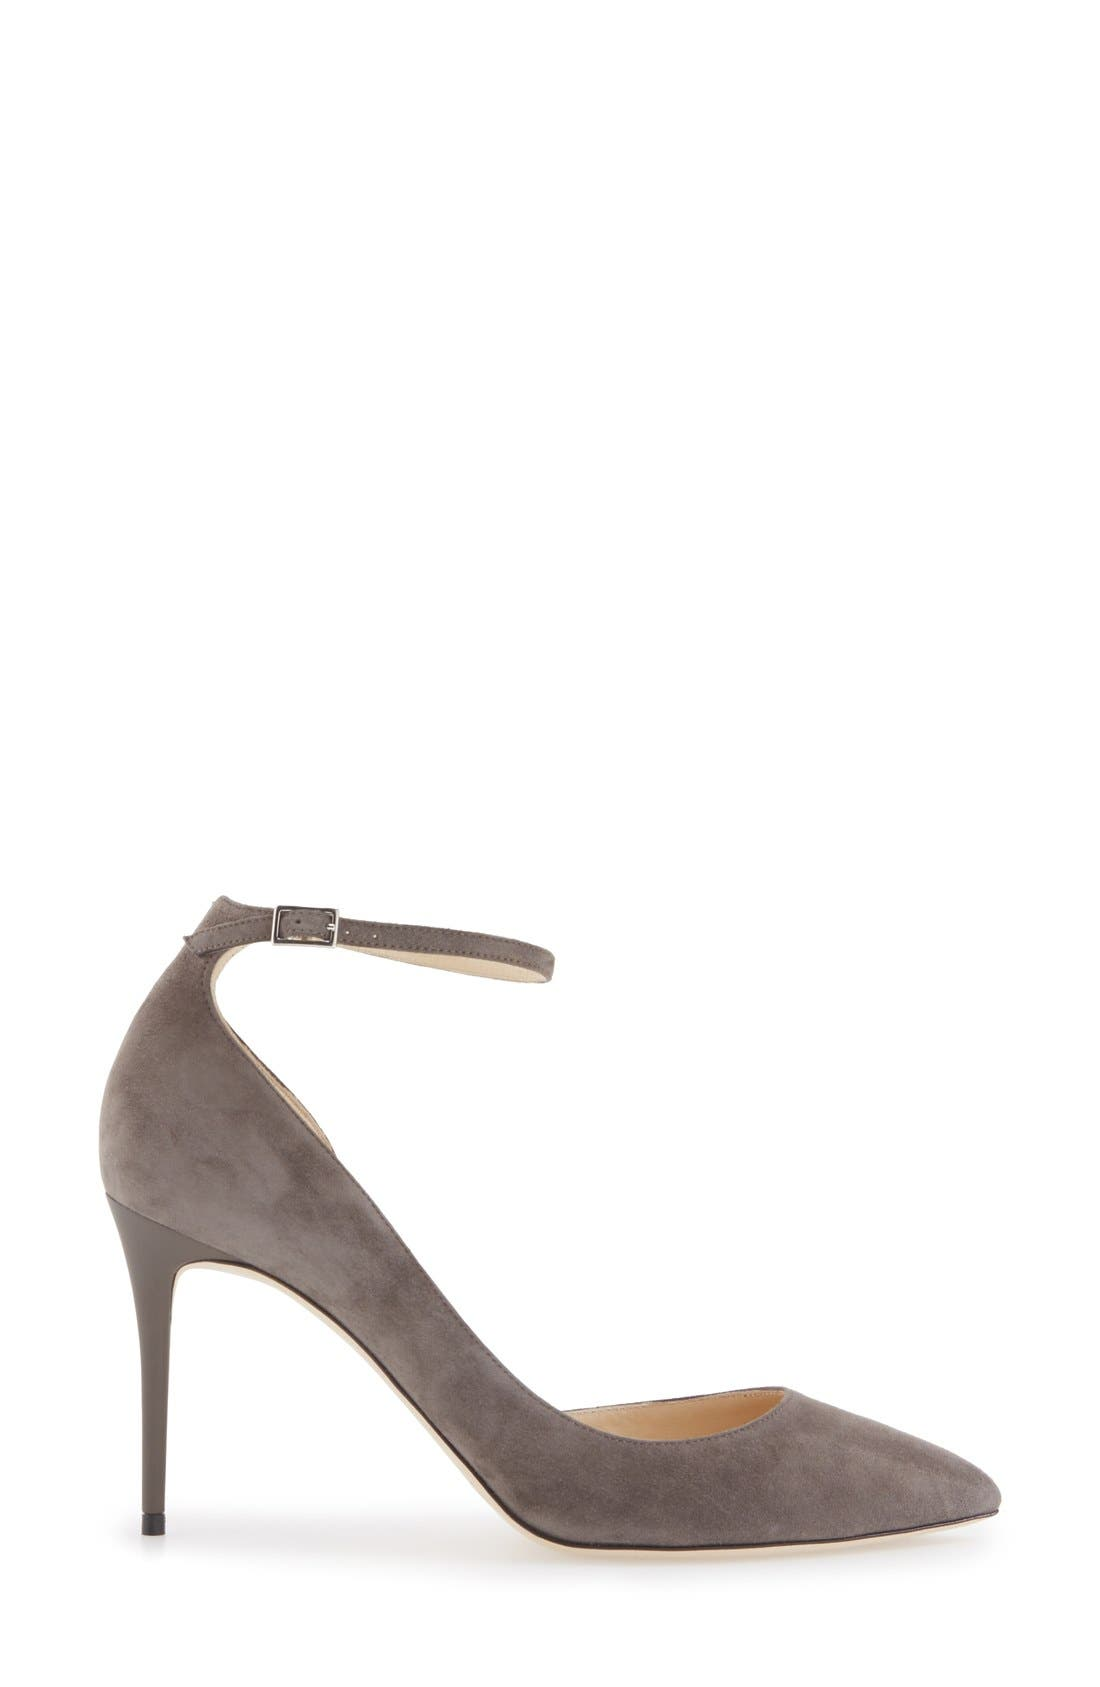 'Lucy' Half d'Orsay Pointy Toe Pump,                             Alternate thumbnail 15, color,